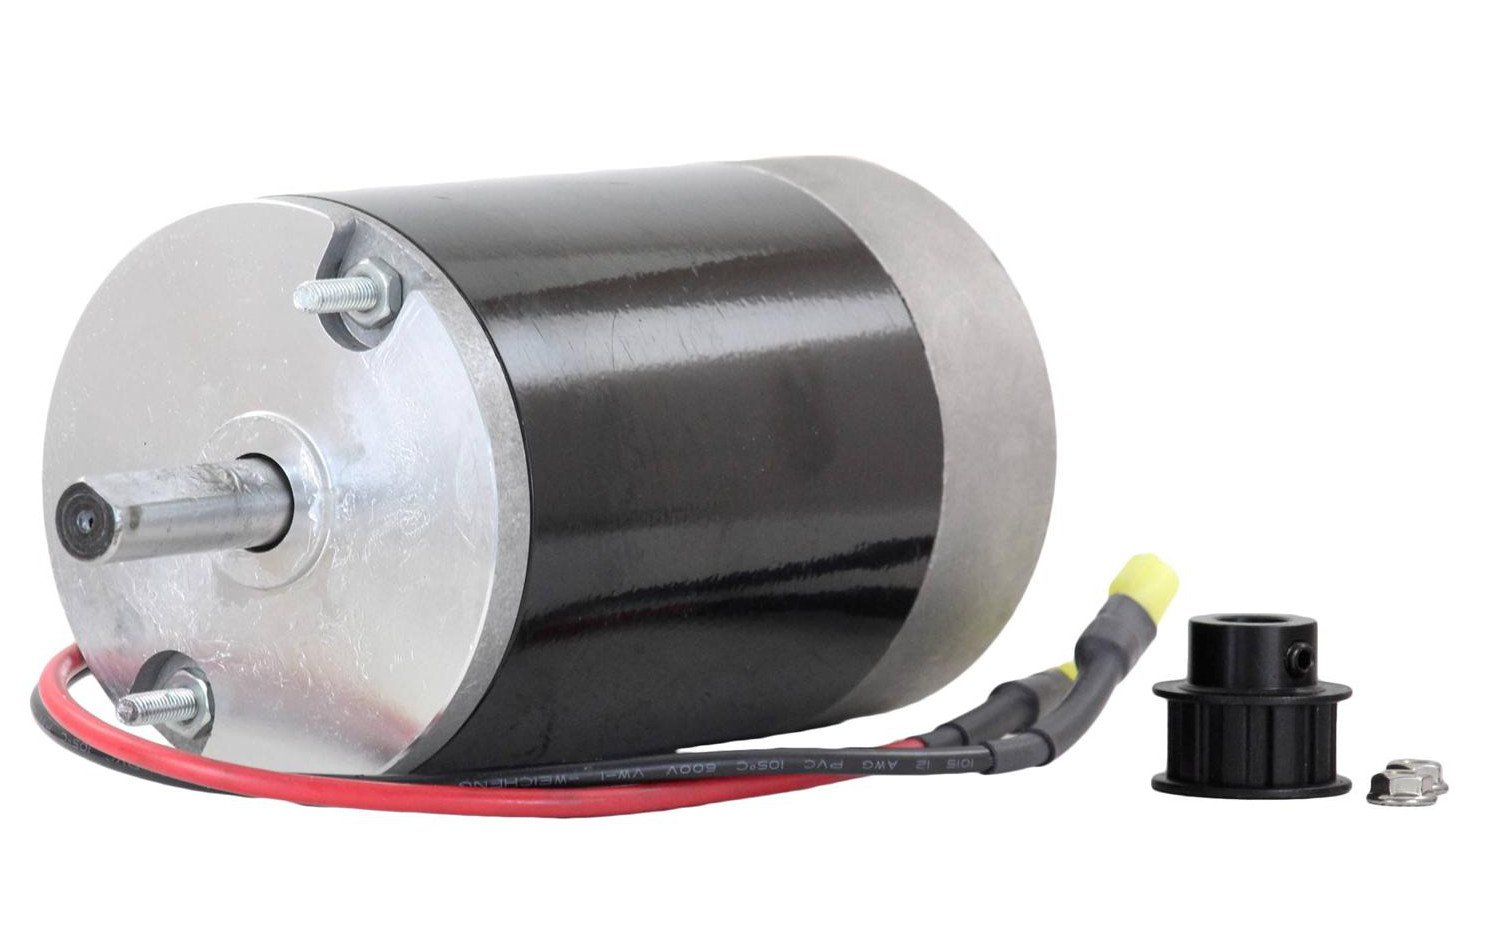 Amazon.com: NEW 12V DC SPINNER MOTOR FITS FISHER POLY CASTER 1/2 ...